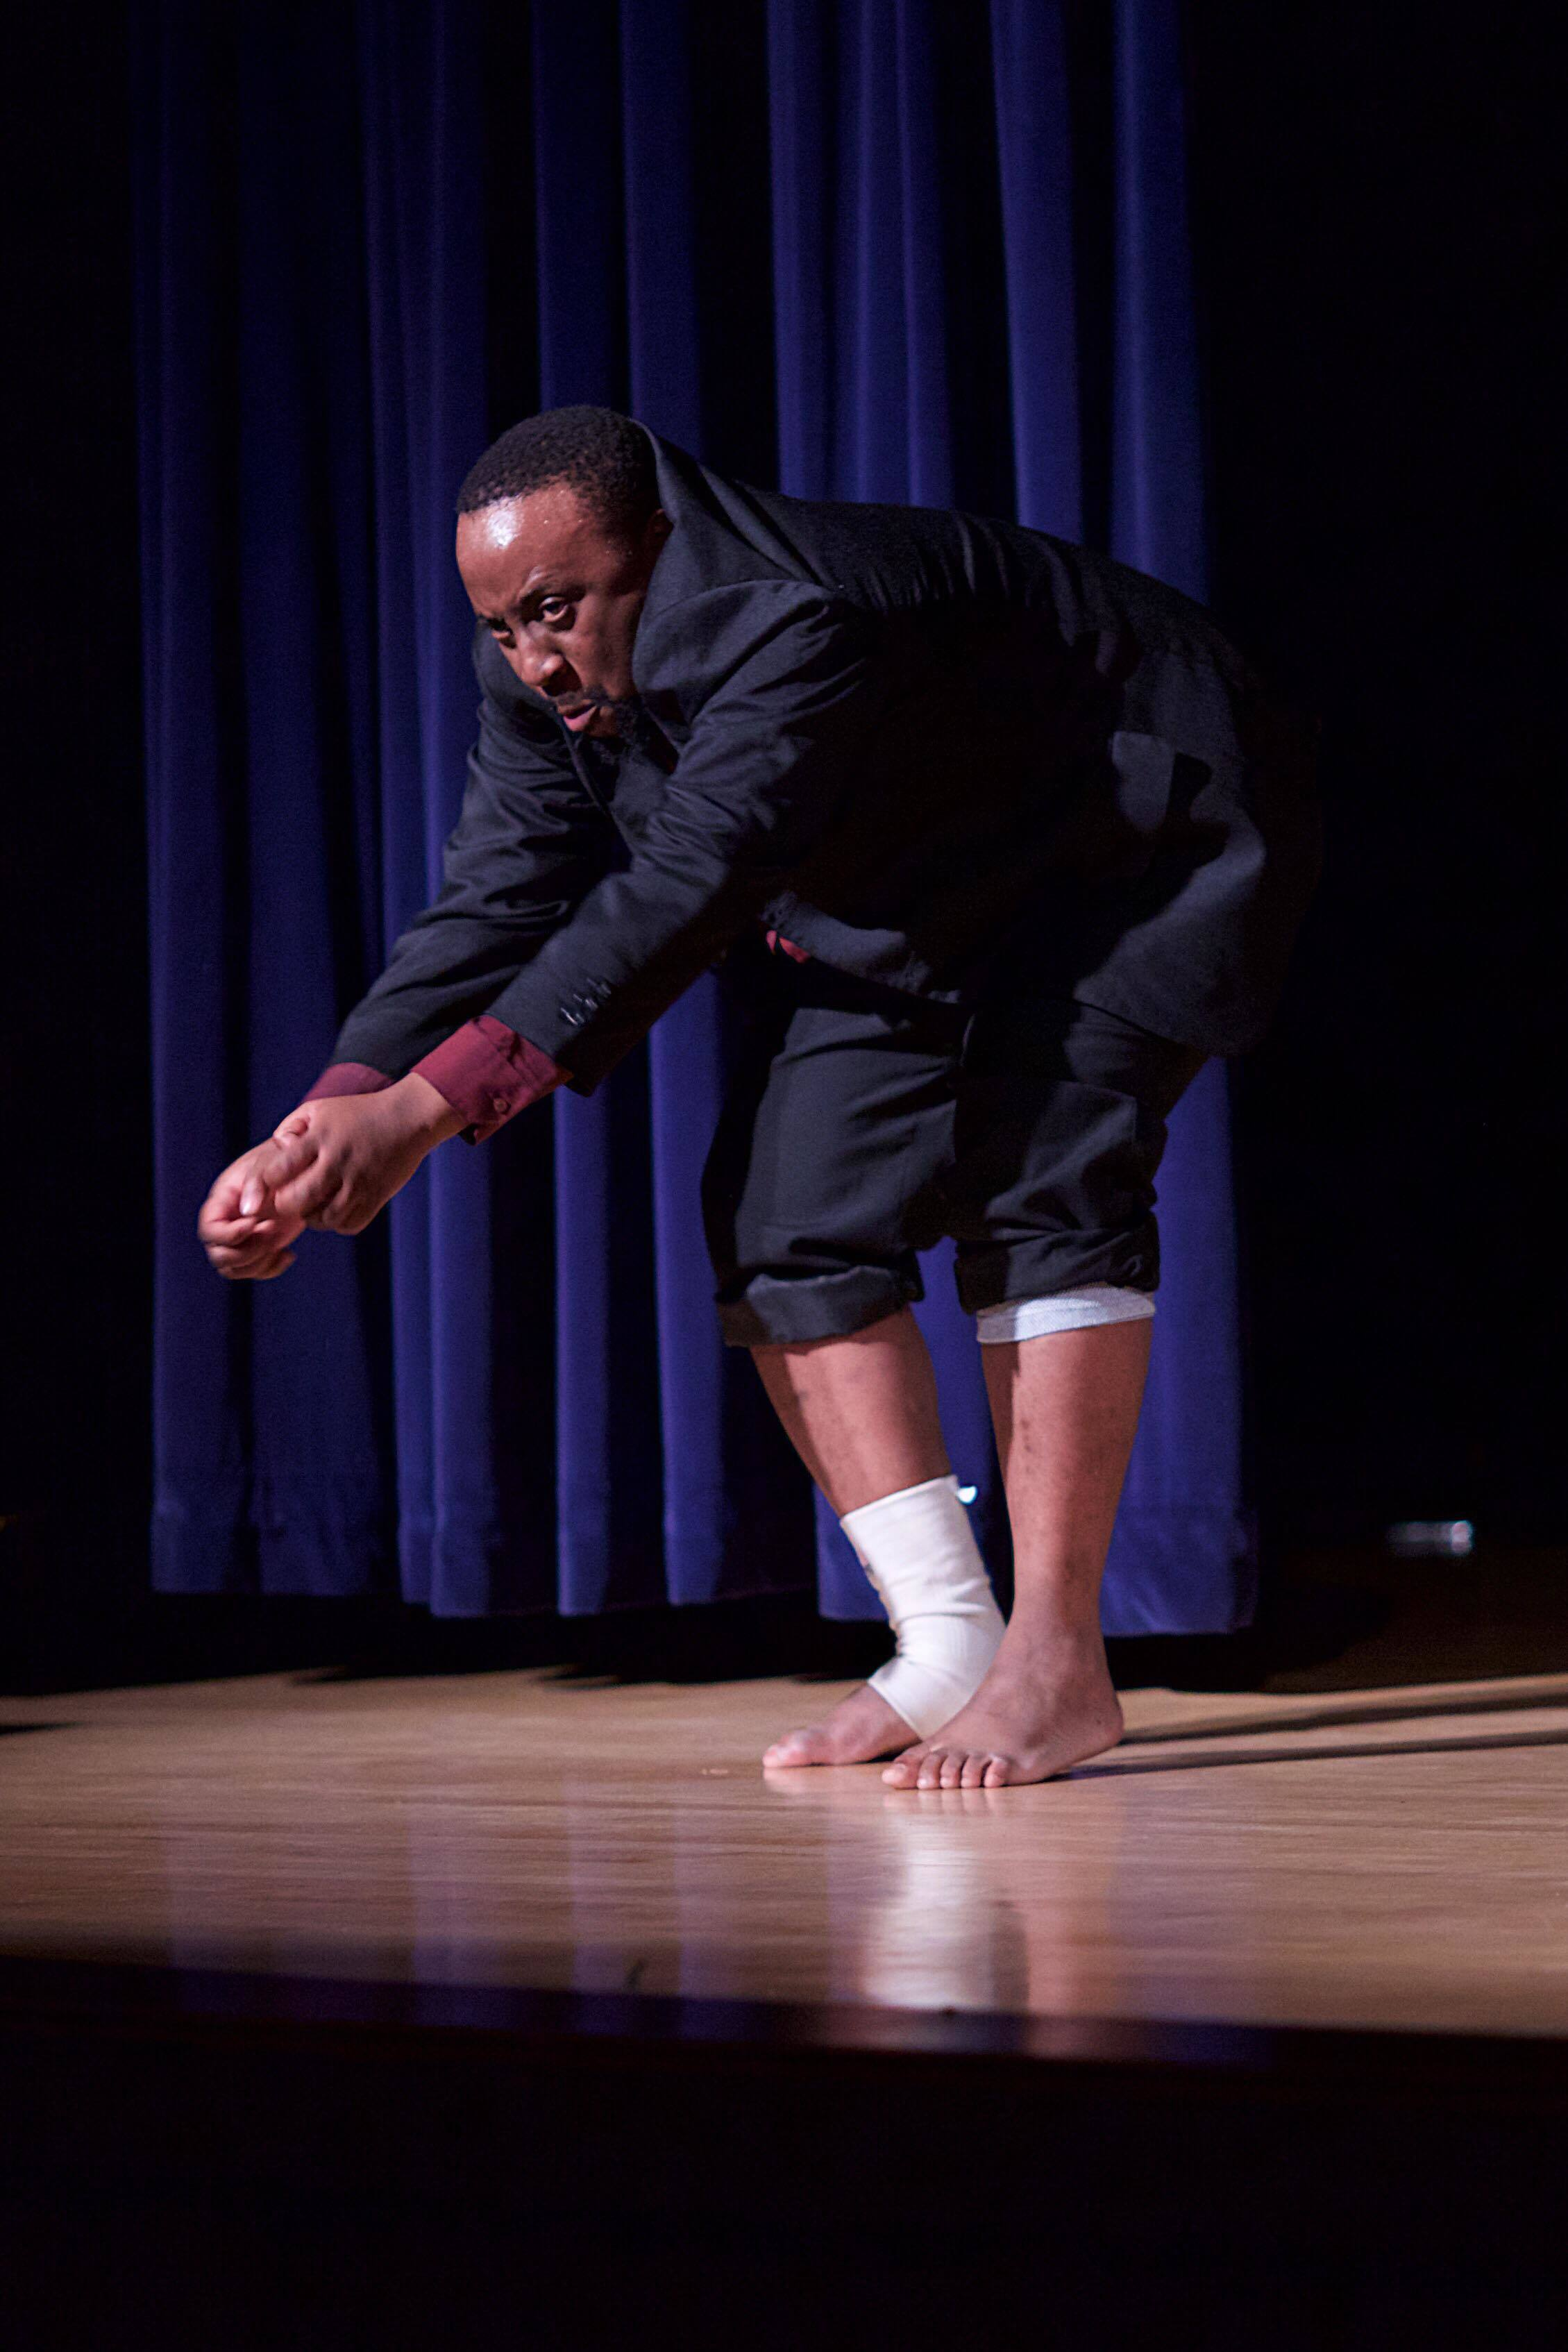 Miyambo's performance... ...His physicality and next to accurate imitation of the primate all with the unsettling ape sounds is riveting